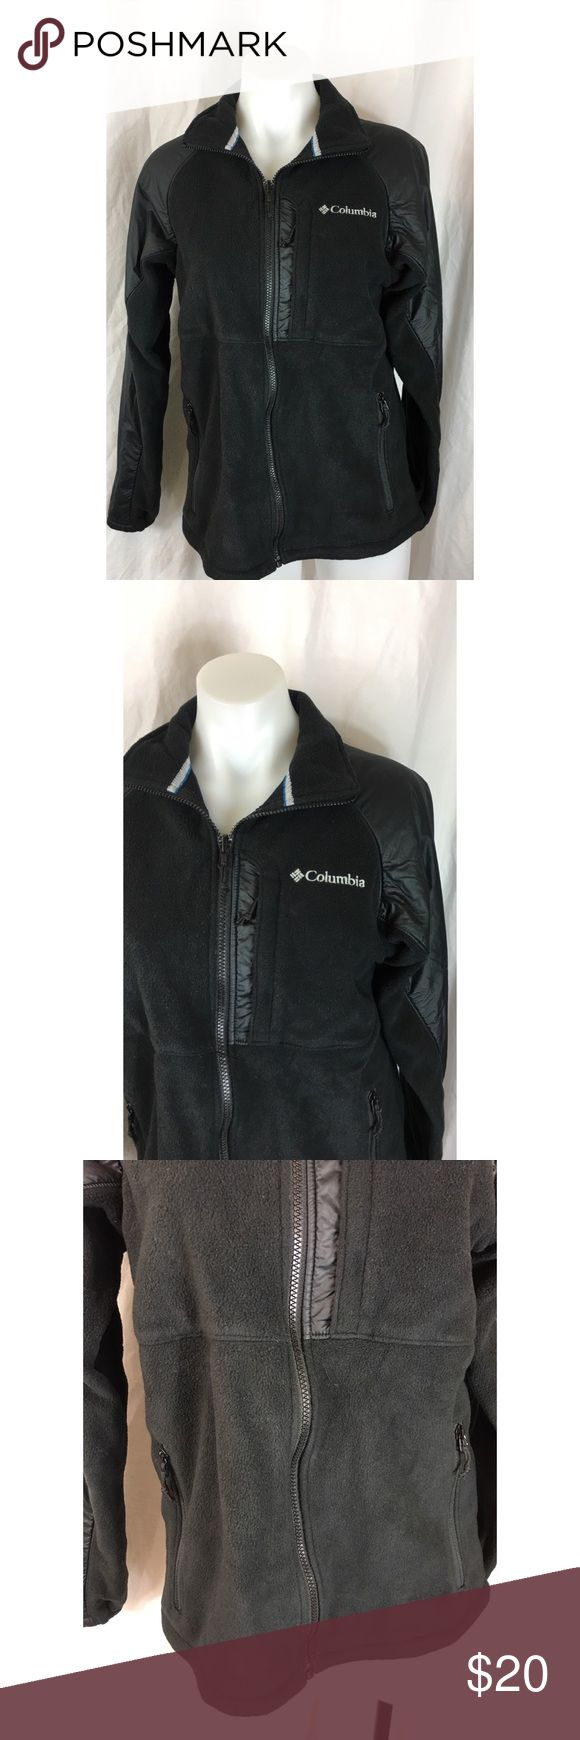 Columbia Jacket Interchange Ten Trail III fleece Columbia Jacket Interchange Ten Trail III fleece black  WM6361 men's Size:  S Approx measurement: armpit to armpit - 19 1/2 inches; length - 25 inches Fabric content: shell: 100% polyester; trim: 100% nylon; lining: 100% polyester Machine washable Gently used - see pictures Columbia Jackets & Coats